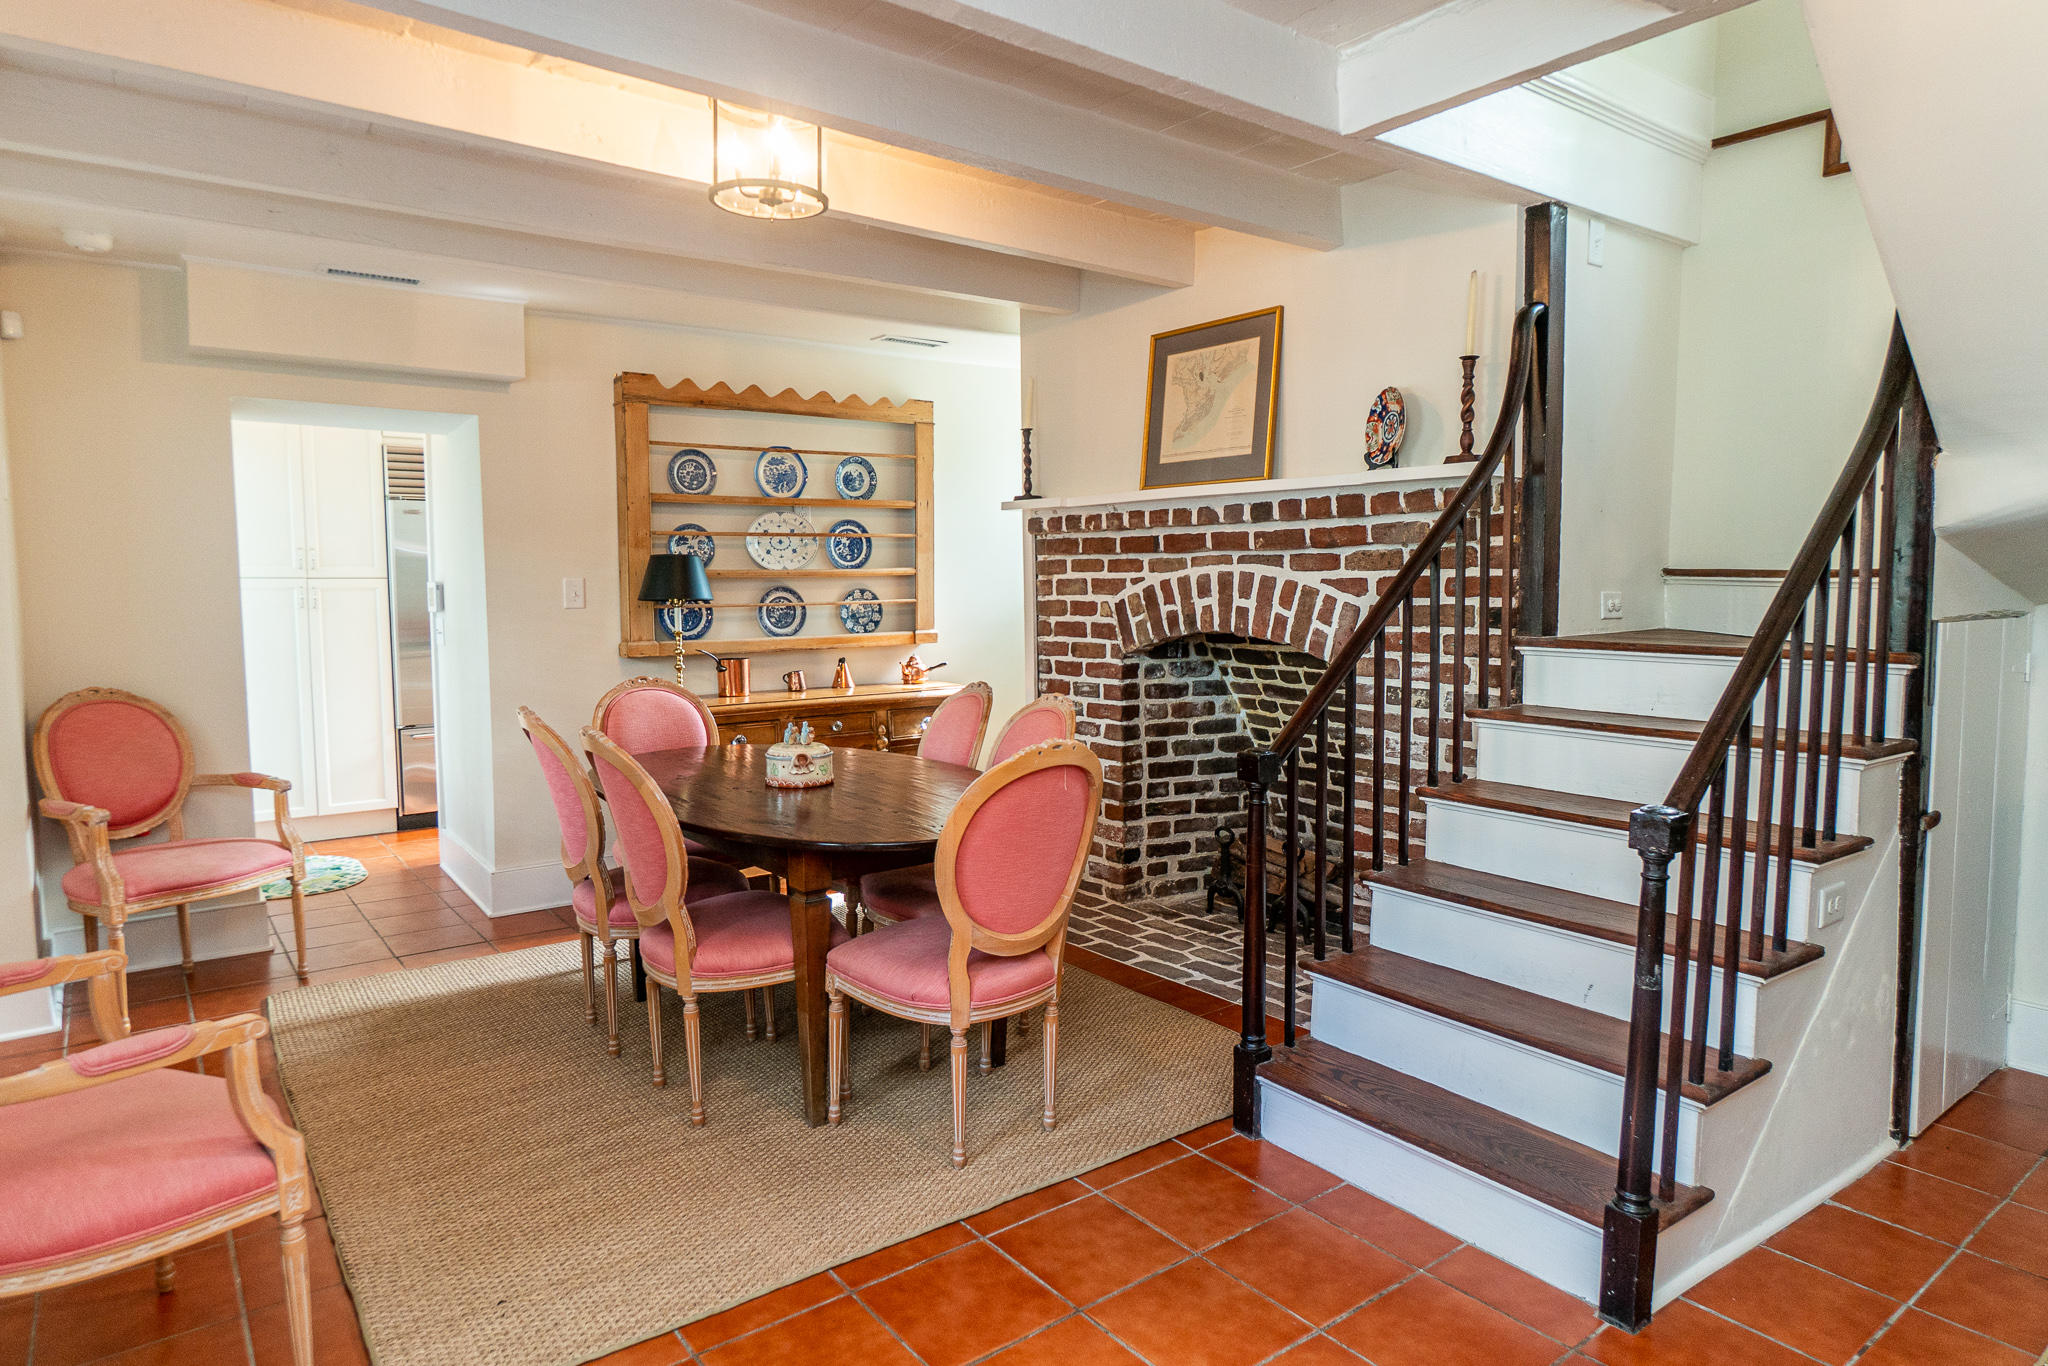 South of Broad Homes For Sale - 44 Battery, Charleston, SC - 1